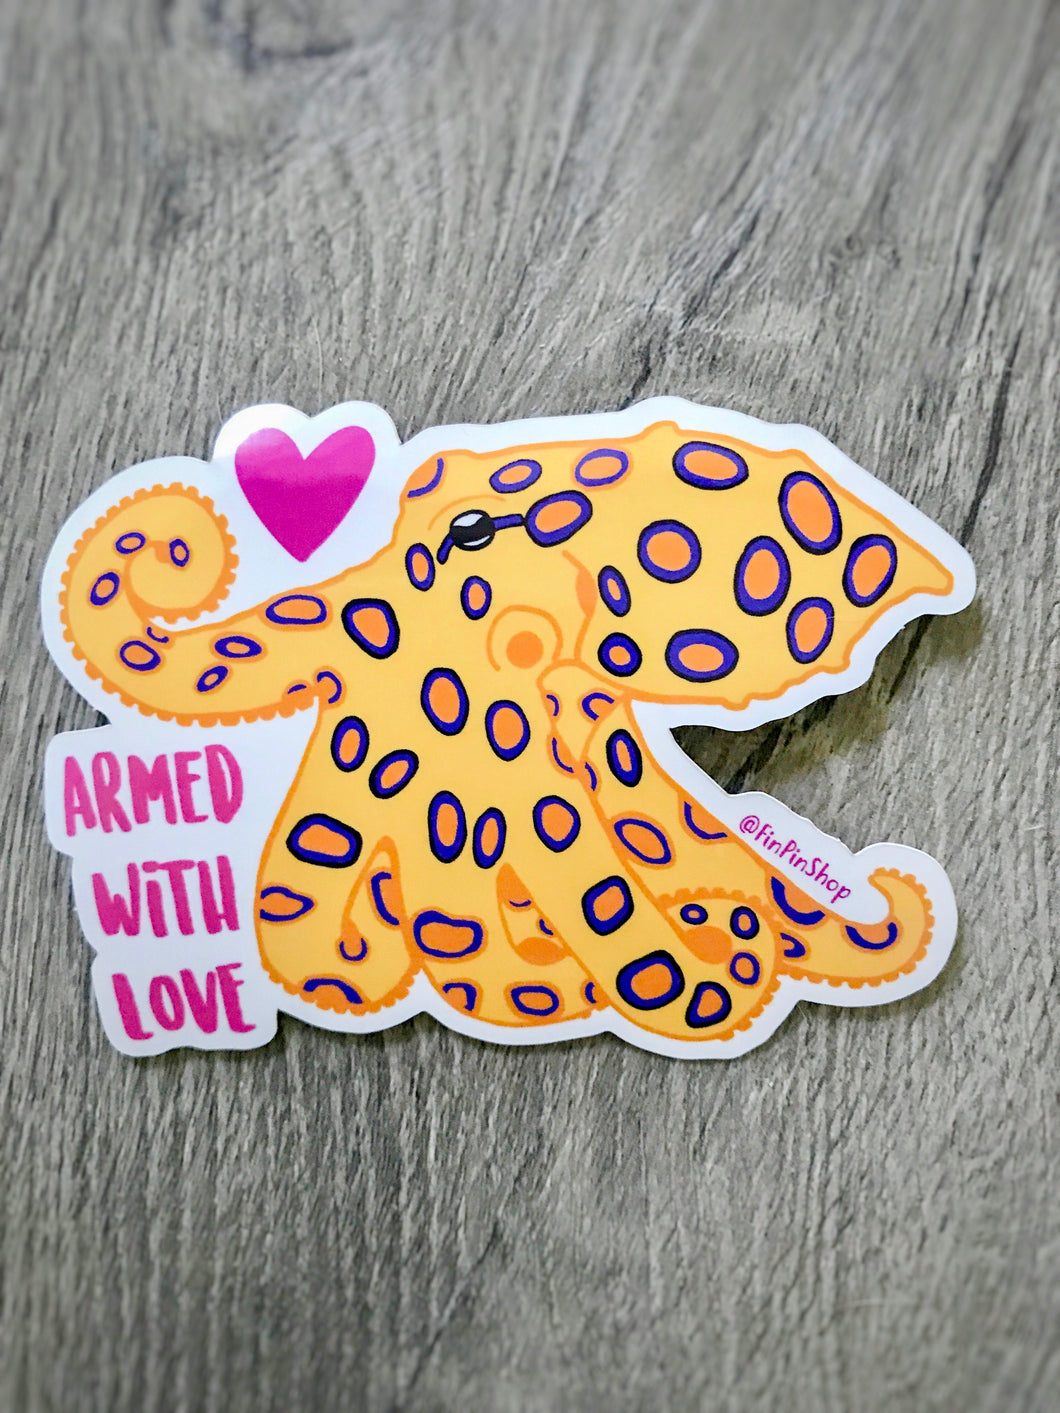 Blue-ringed Octopus Love Sticker